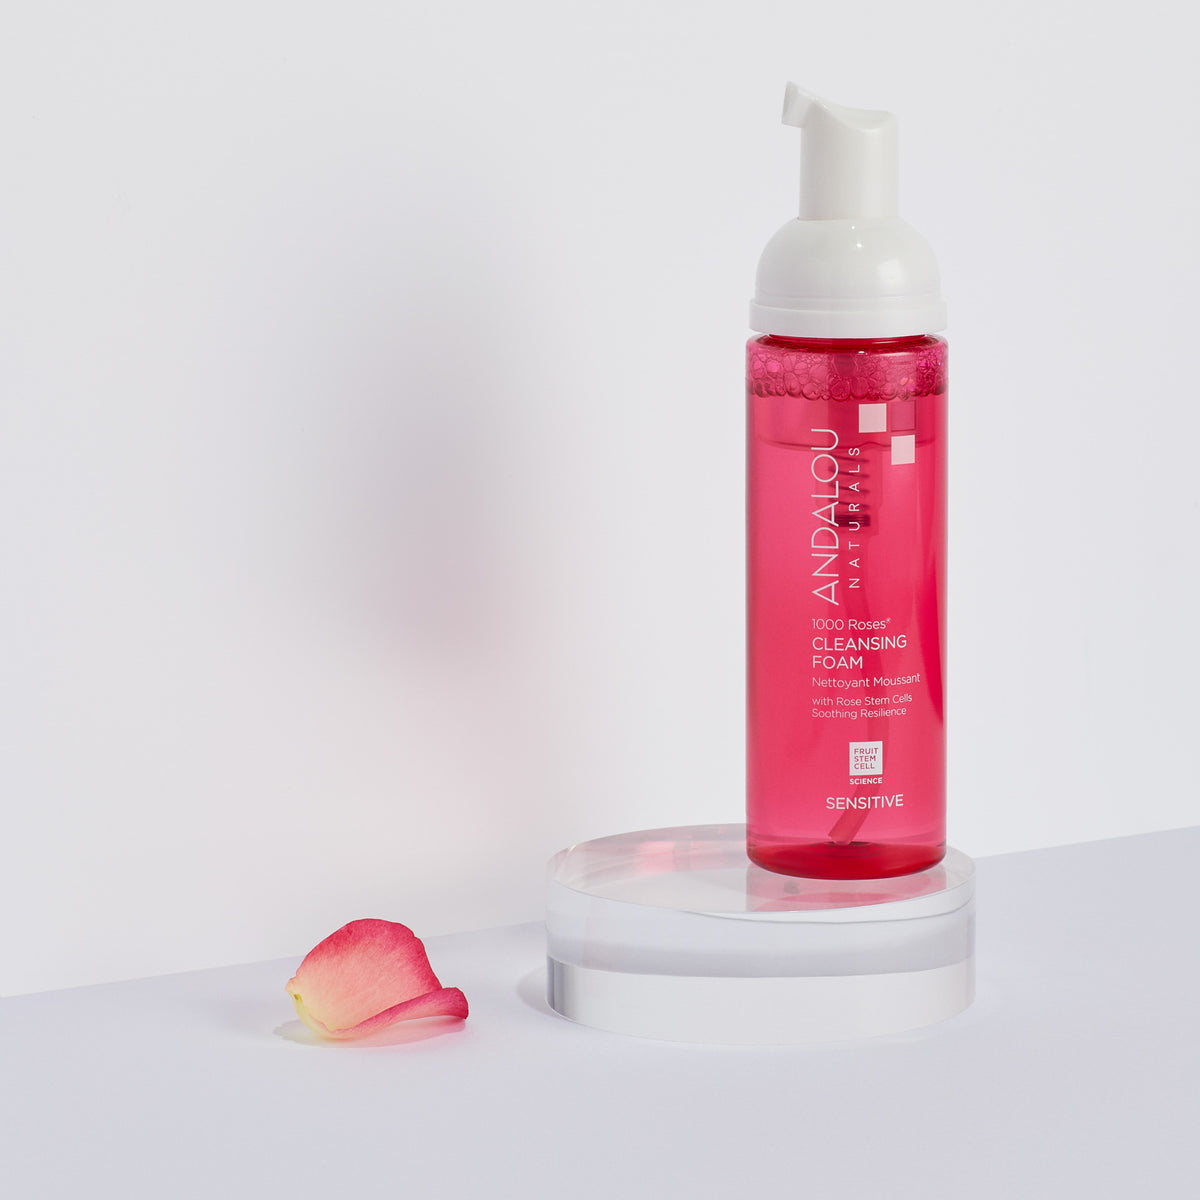 Sensitive 1000 Roses Cleansing Foam bottle with a rose petal